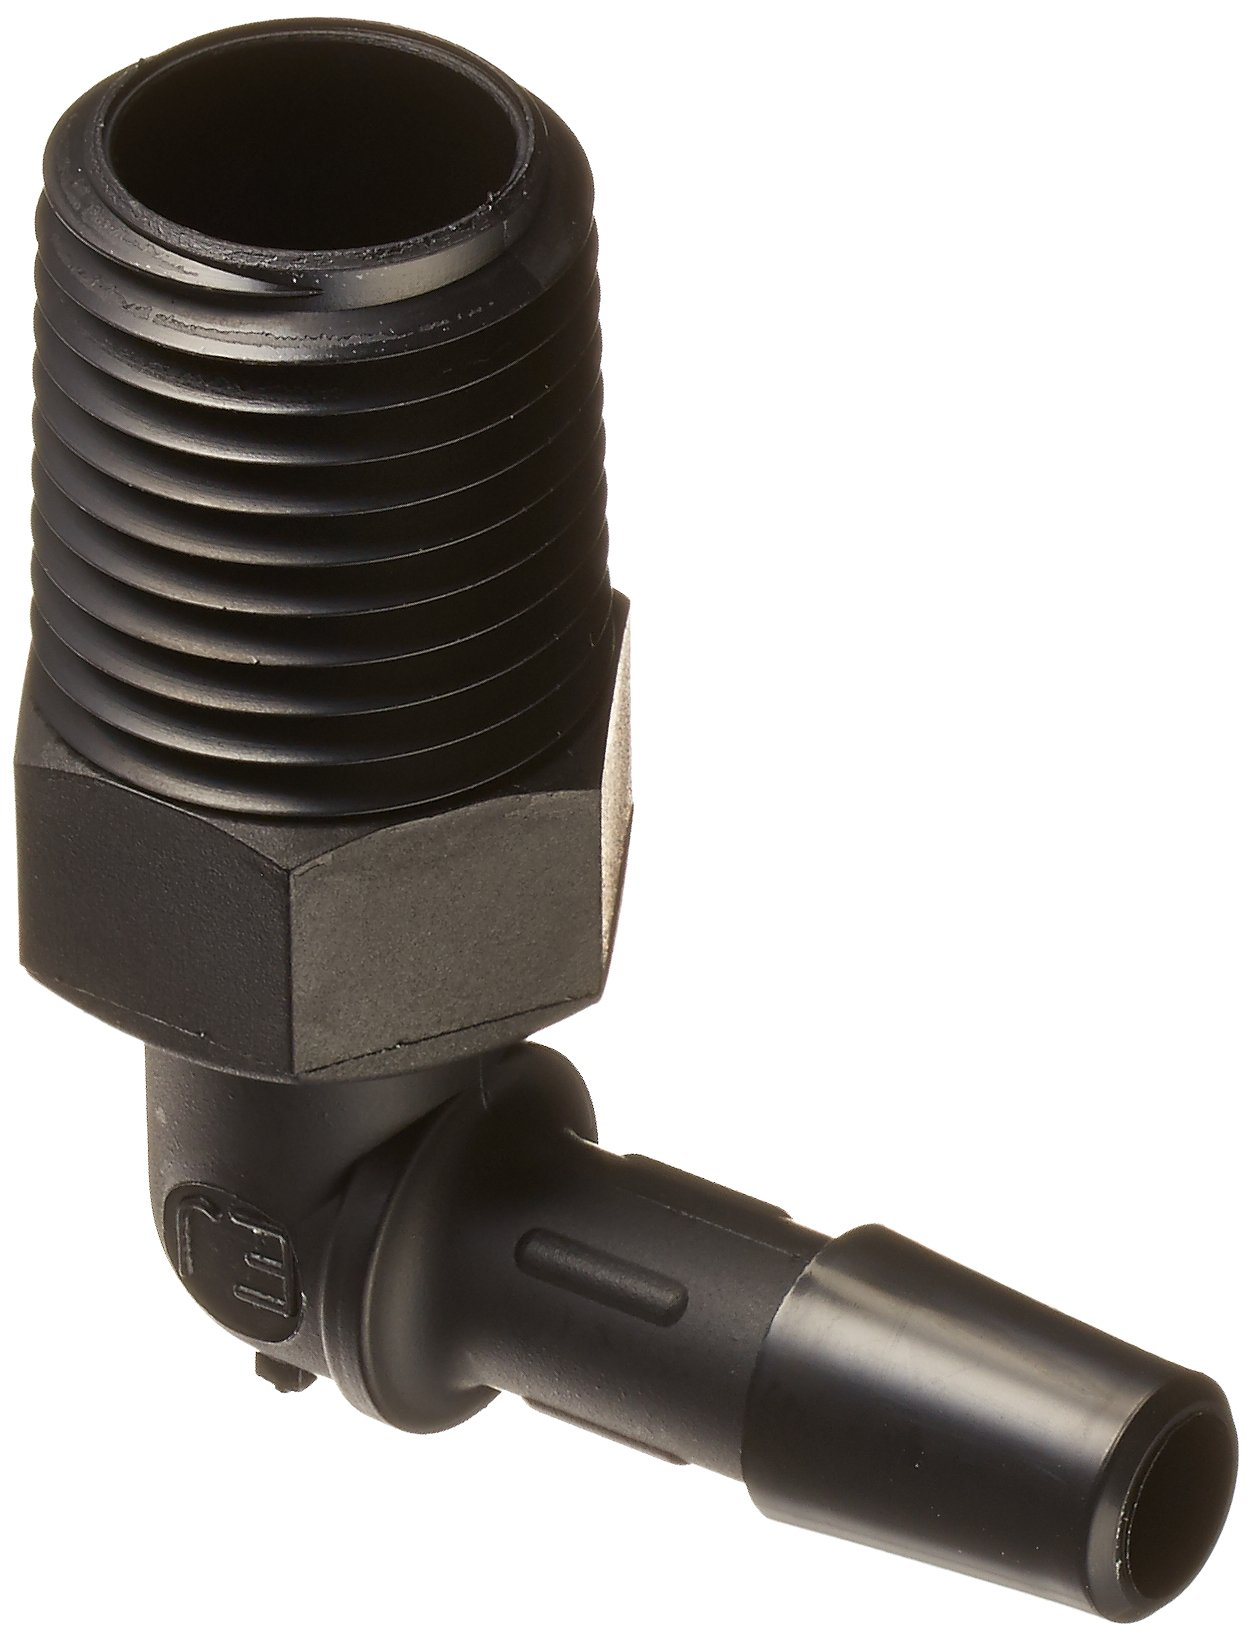 Pack of 10 1//4-18 NPT to 1//8 Hose Barb 1//4-18 NPT to 1//8 Hose Barb Eldon James A4-2BN Black Nylon Adapter Fitting Pack of 10